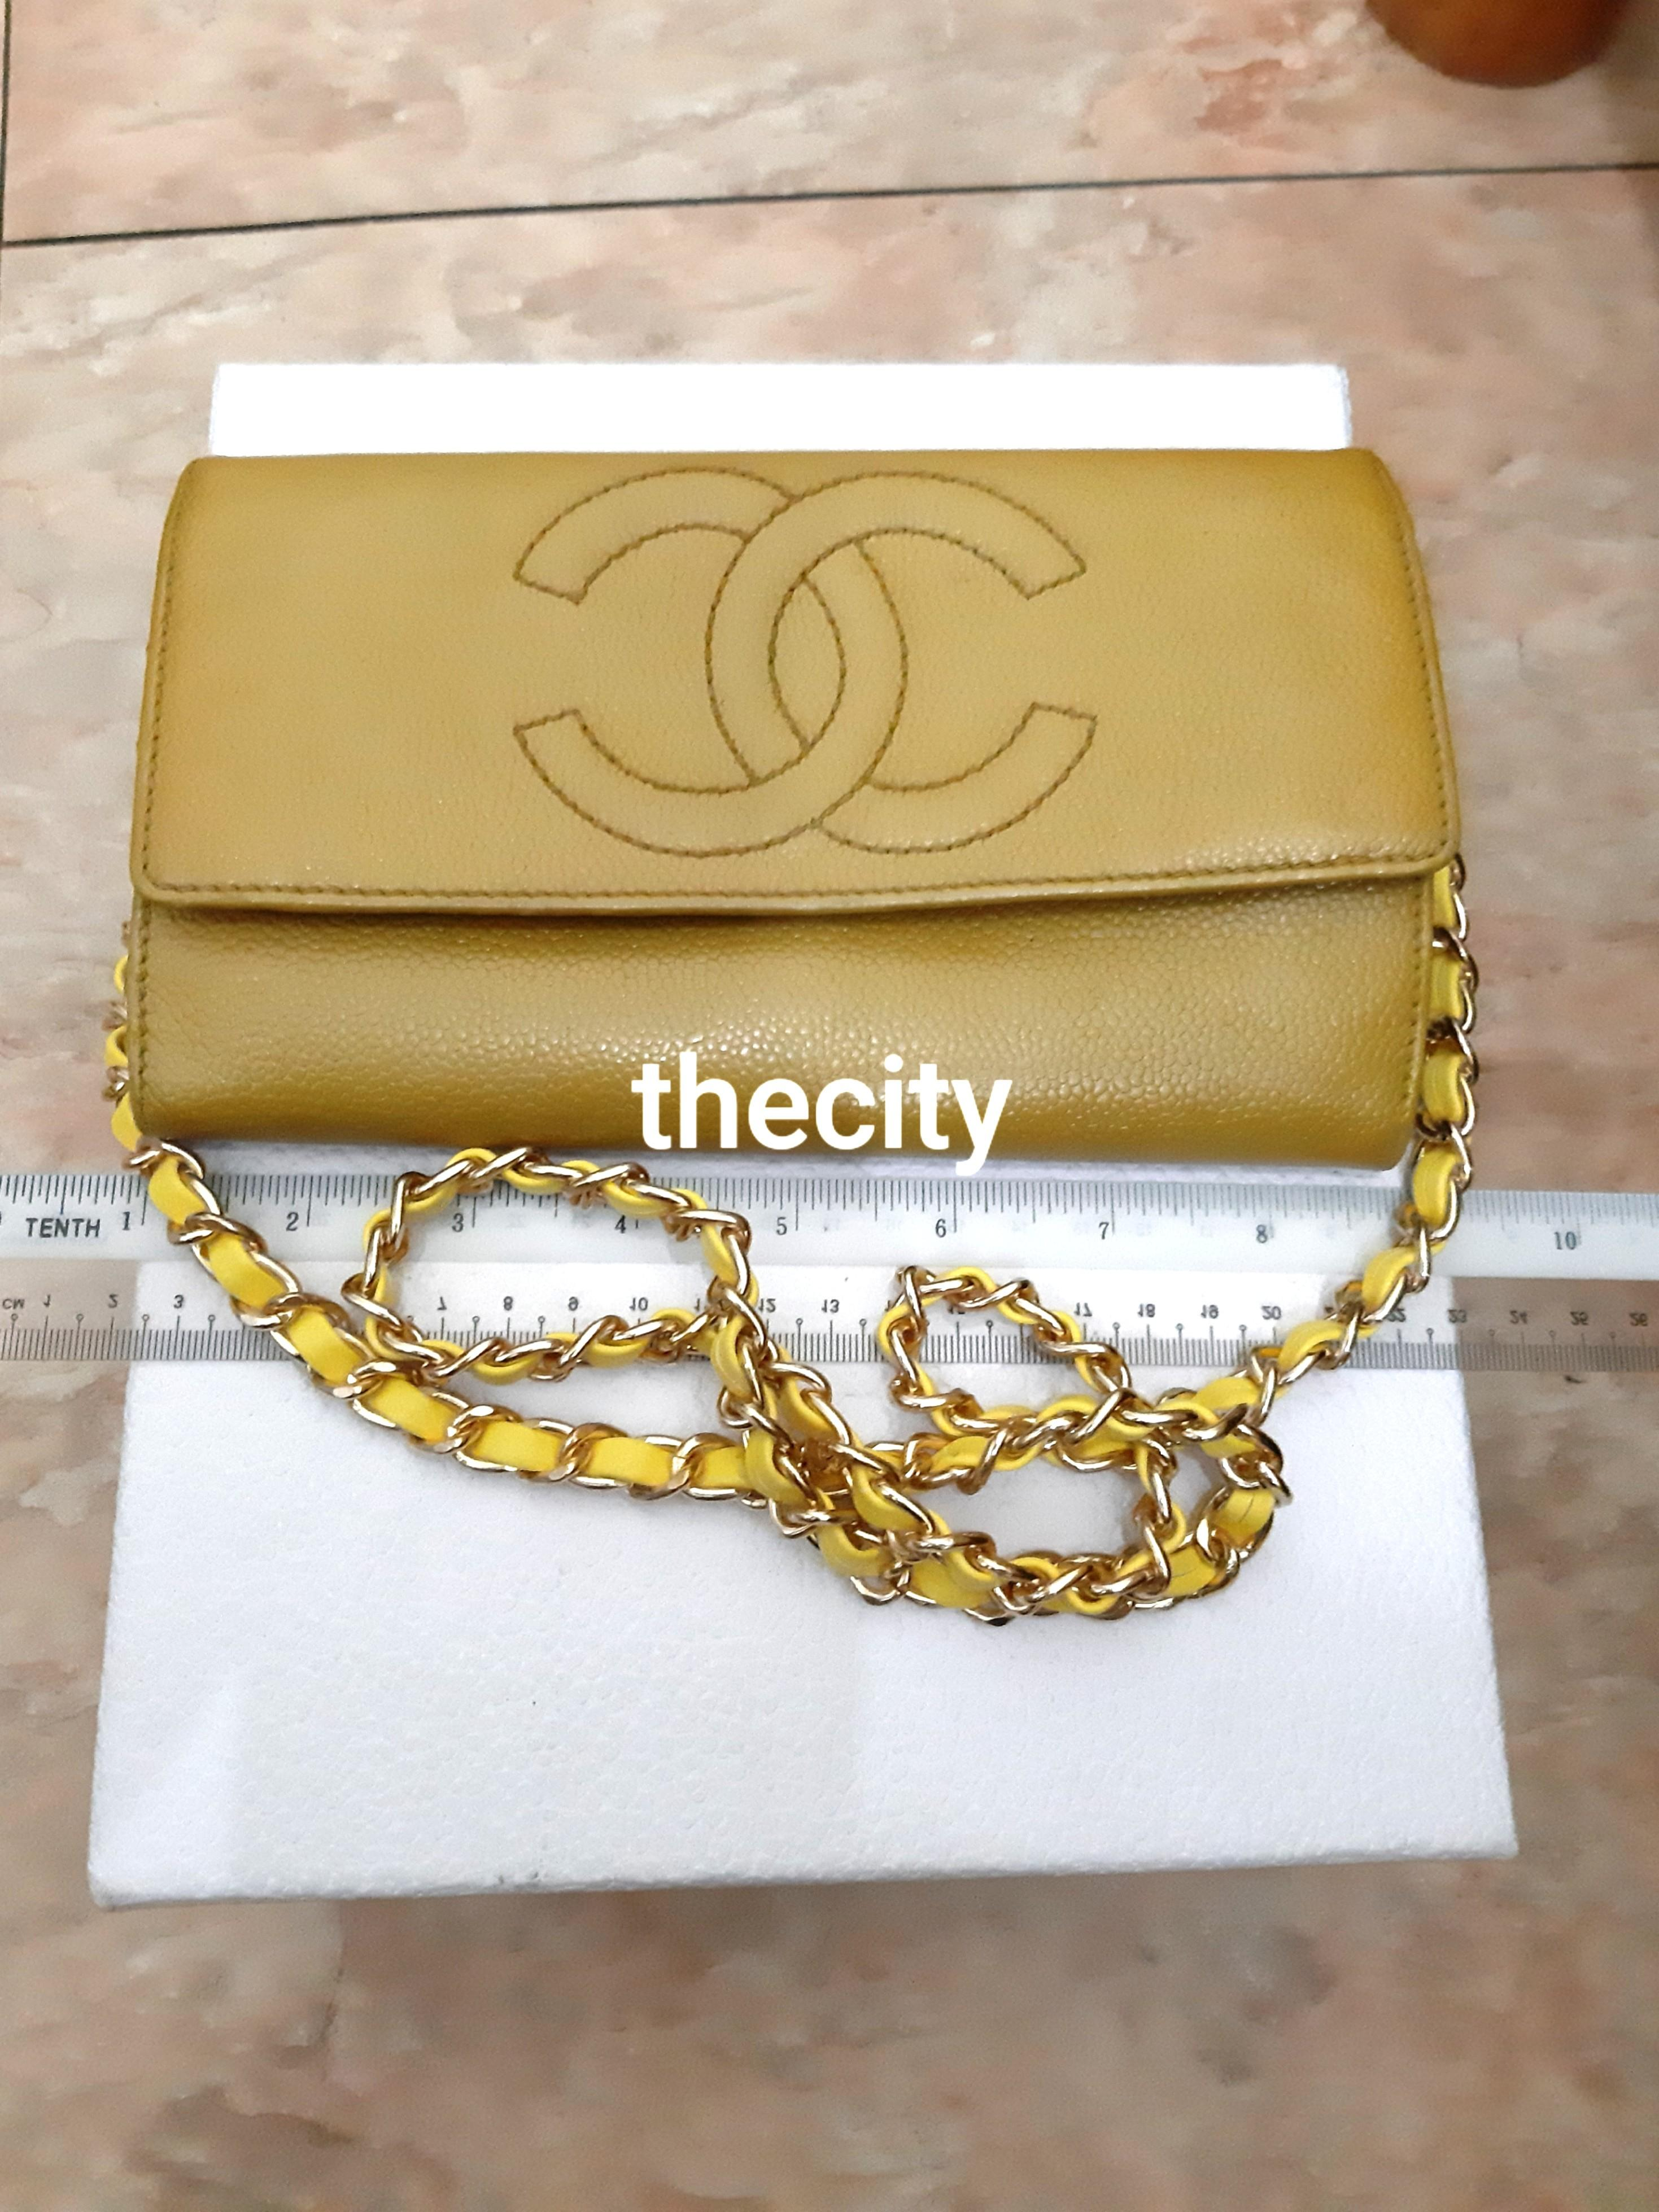 AUTHENTIC CHANEL CAVIAR LEATHER- XL ORGANIZER POUCH / WALLET- CC LOGO DESIGN - CAVIAR LEATHER IN GOOD CONDITION, INTERIOR LINING IS ABIT WRINKLED / SEASONED - GOLD HARDWARE- COMES WITH EXTRA ADD HOOKS & LONG CHAIN STRAP FOR CROSSBODY SLING